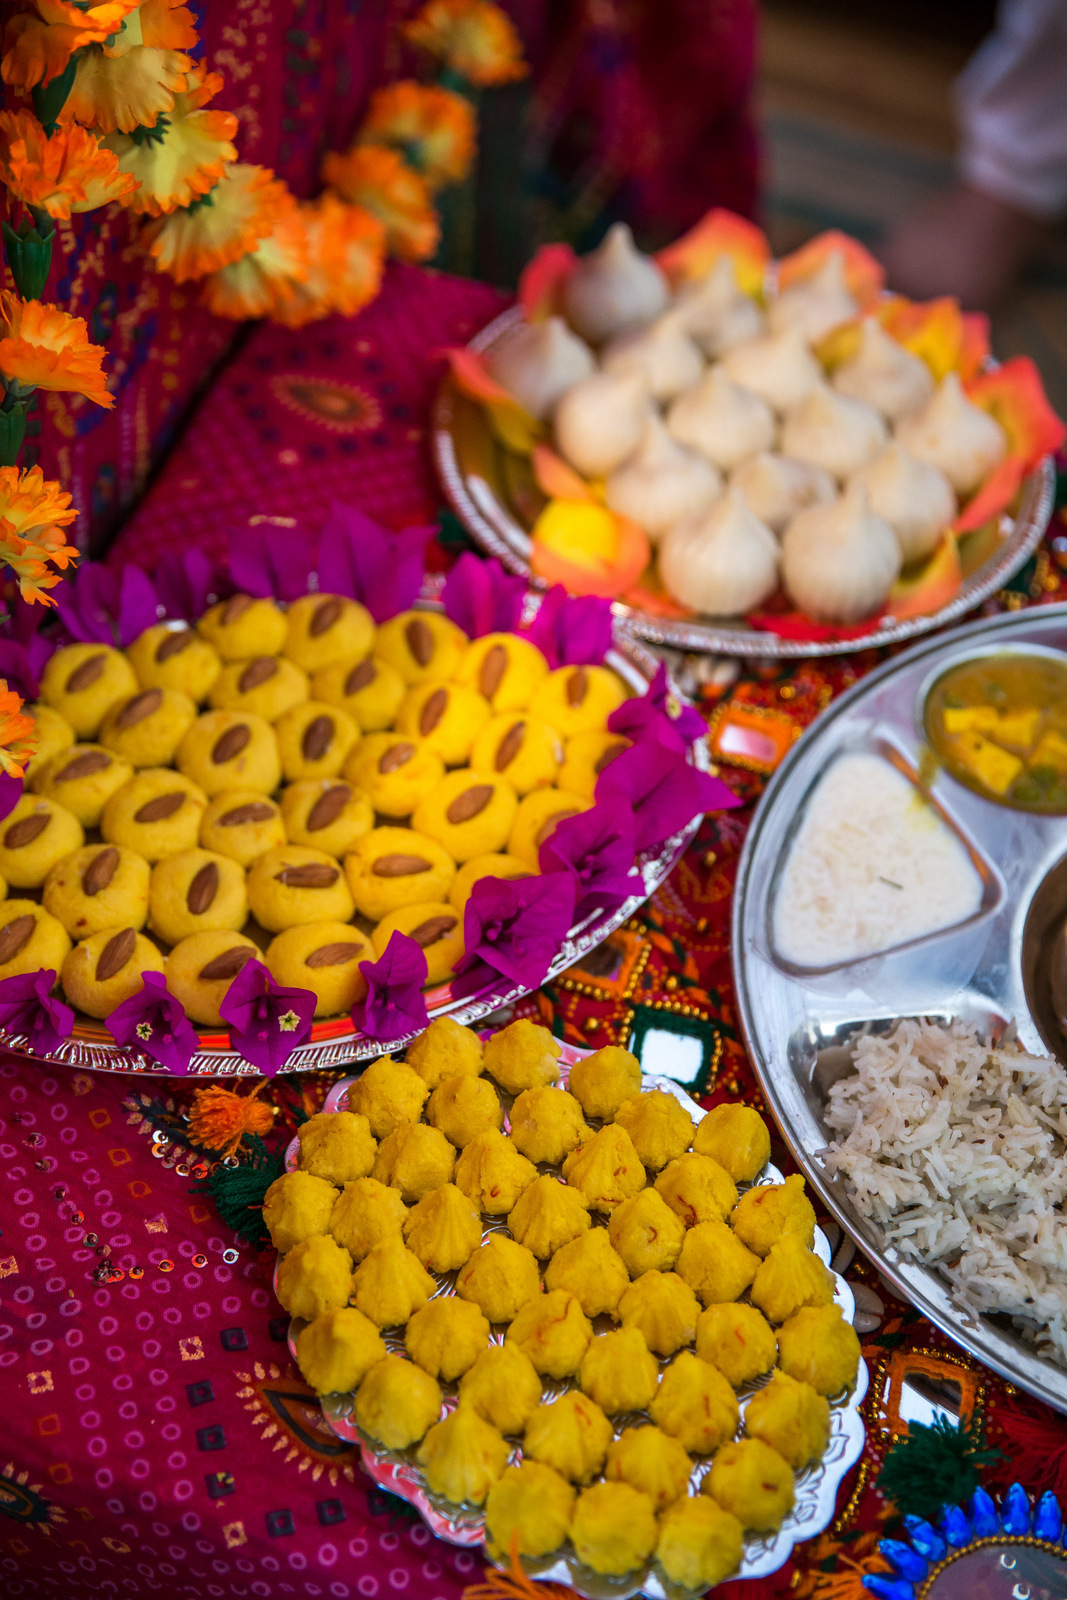 ganesh utsav recipes, modak recipe, pedha recipe, how to make modal, ganesh chaturthi recipes, modak pedha recipe, ladoo recipes, ukadiche modak recipe, fried modak recipes, ganpati bappa morya, indian festivals, celebrations, mumbai, india, churma ladoo recipes